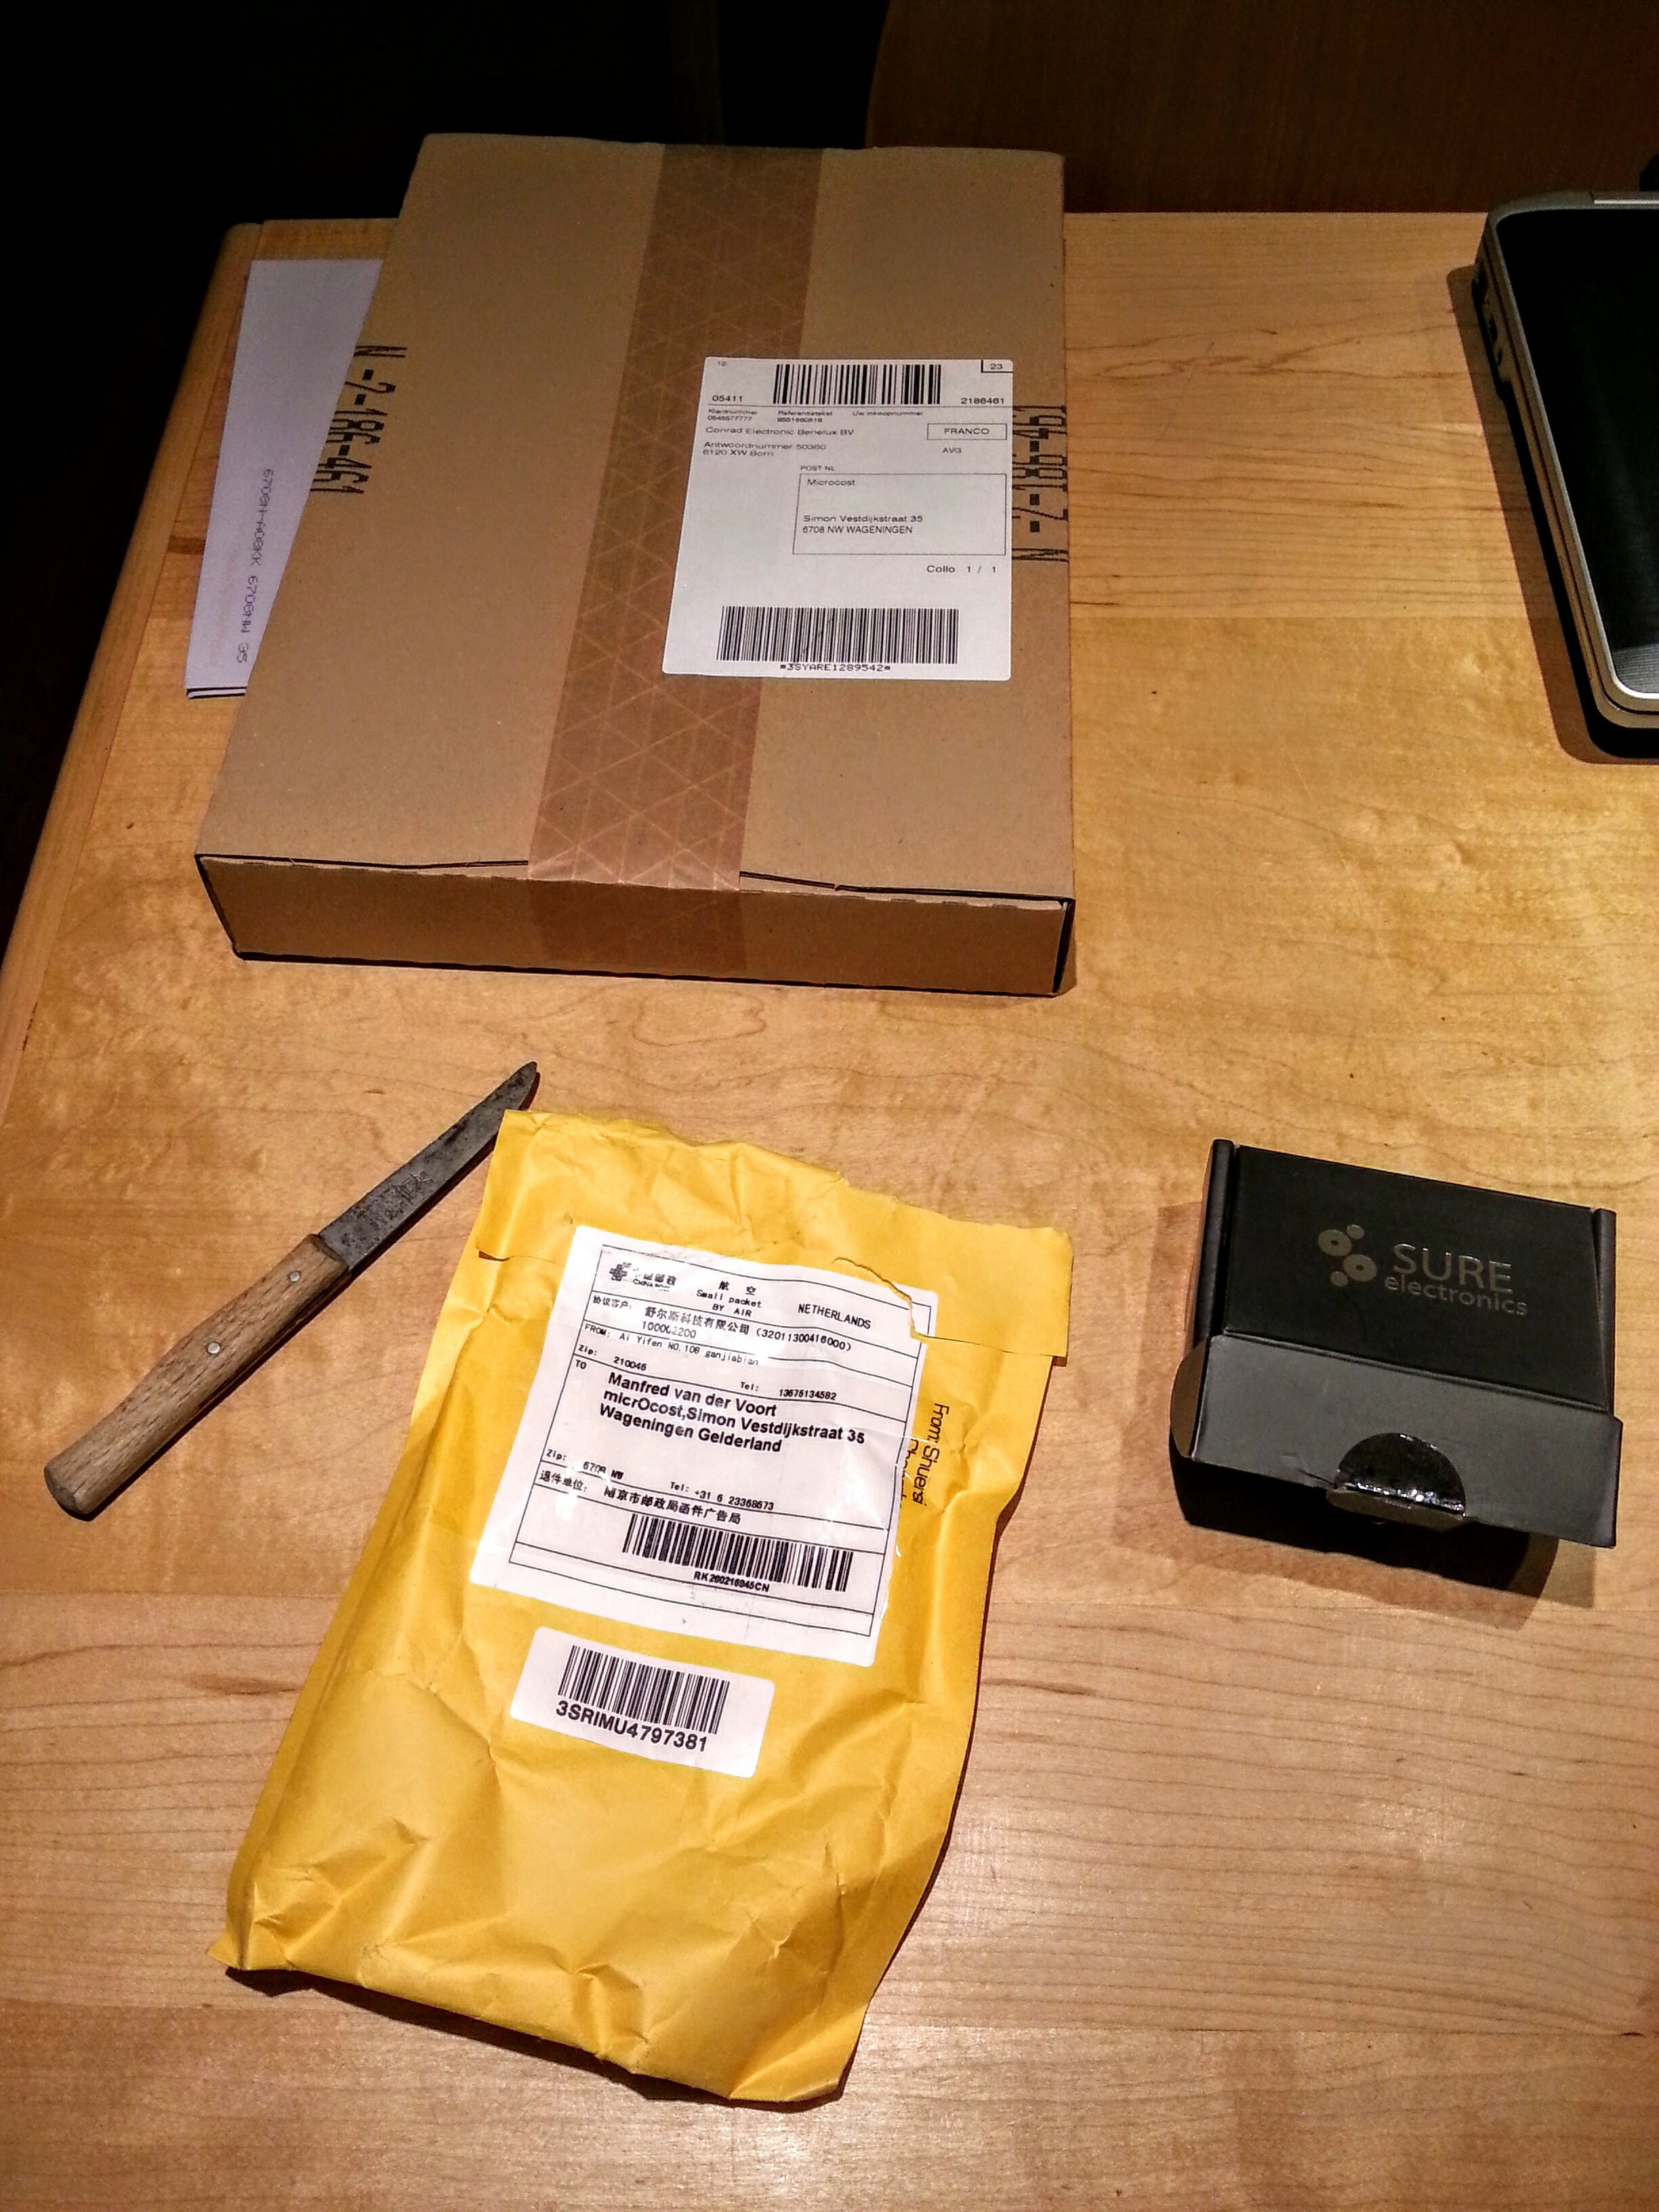 Packages delivered this week.